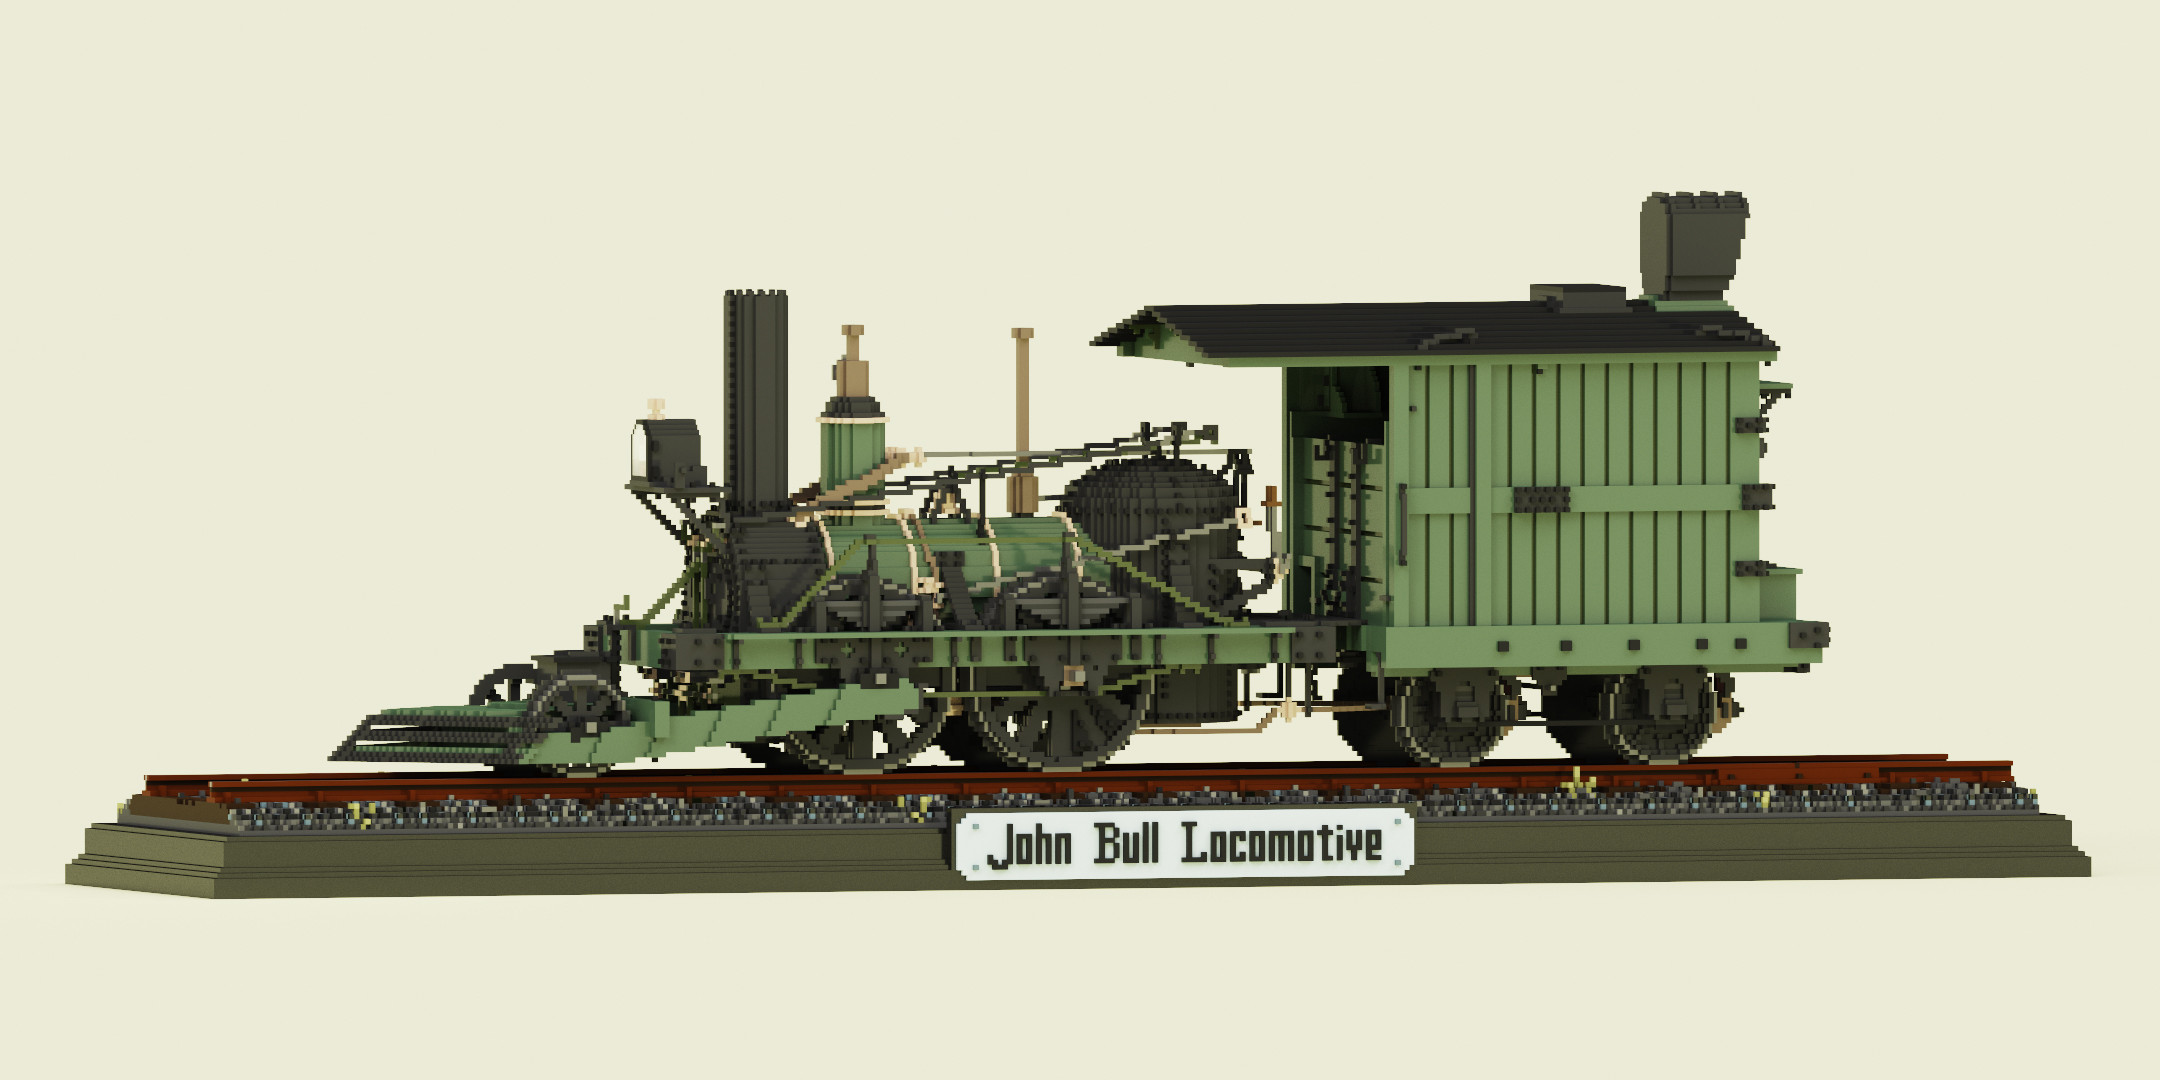 Rendering of the John Bull Locomotive.